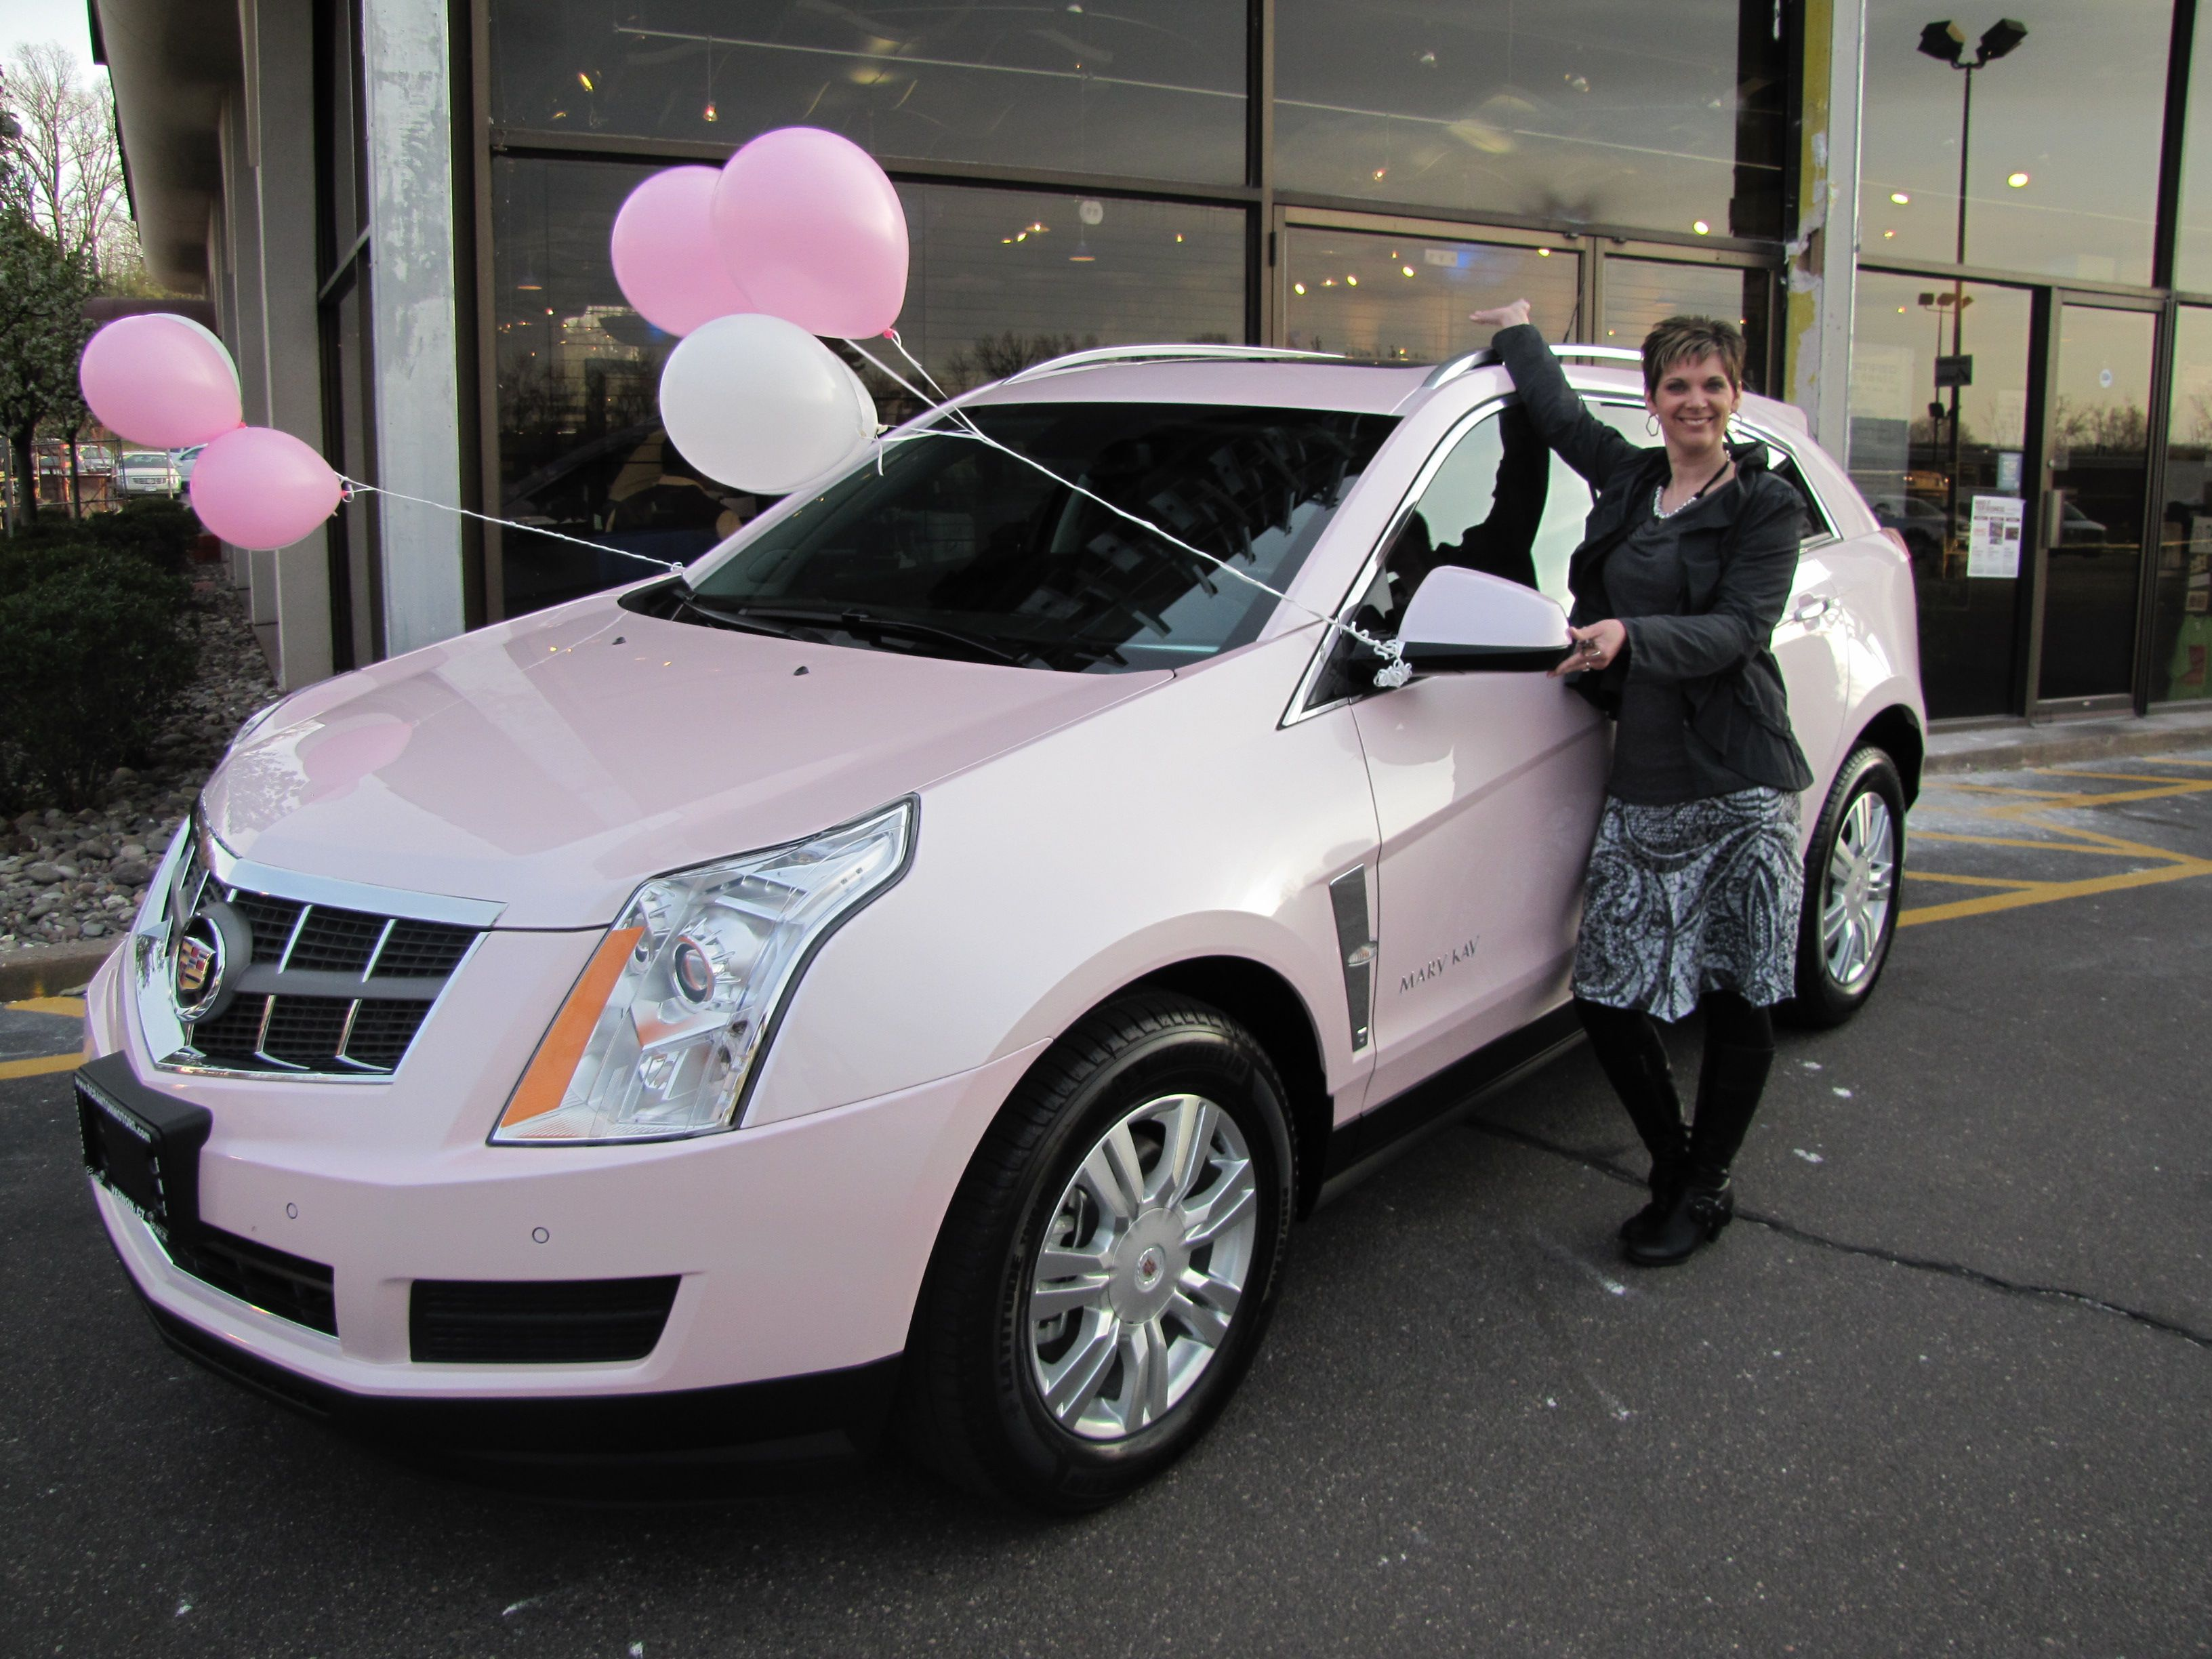 Pink Cadillac SRX <3 this is my dream car, but justin would